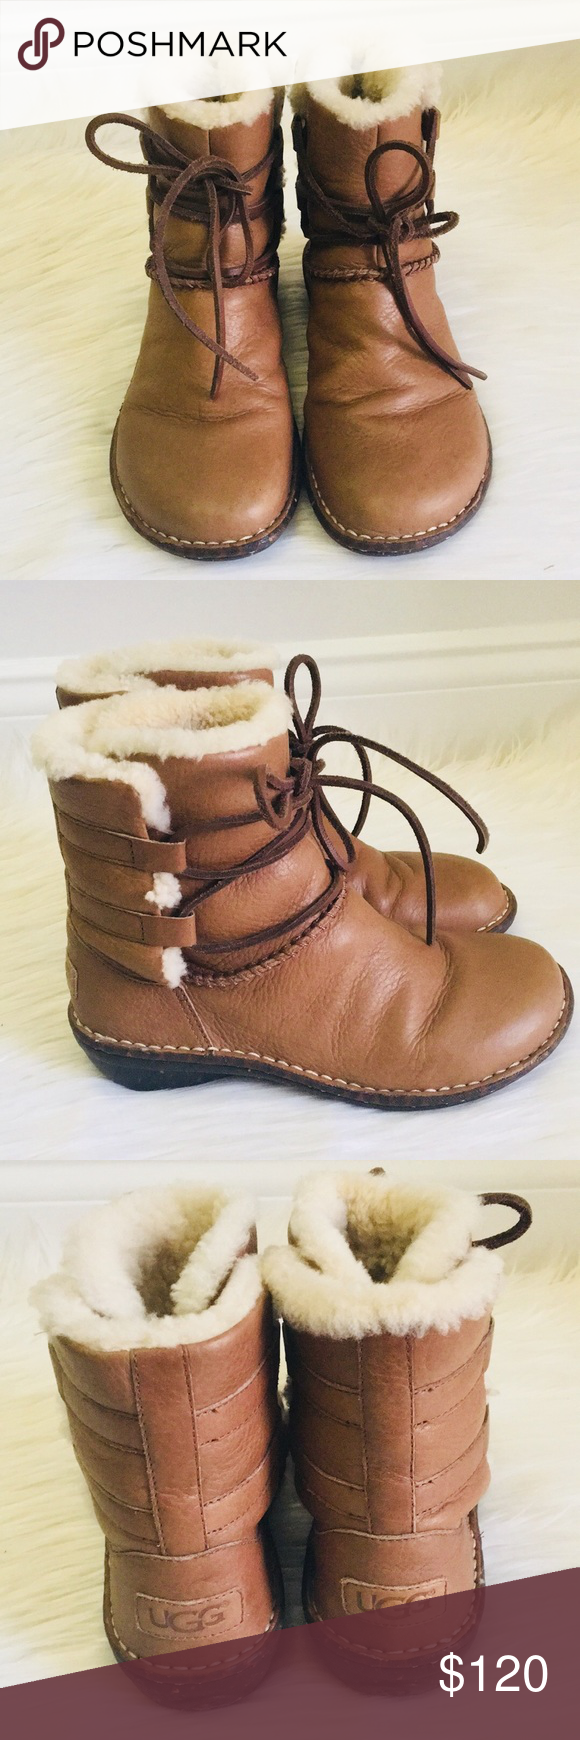 ab3bc5f5788 UGG Luisa Leather Boots UGG Luisa Leather Boots Still in great ...